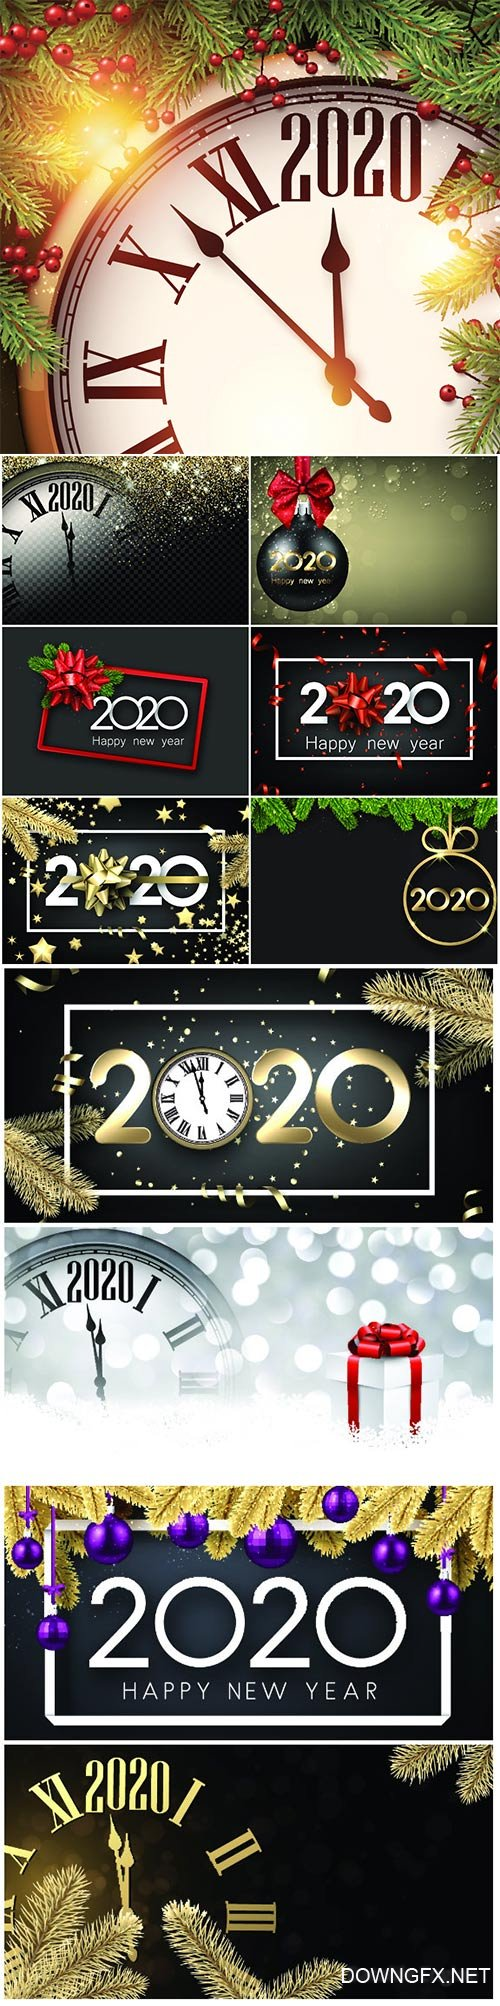 Happy New Year 2020 card with fir branches and Christmas balls